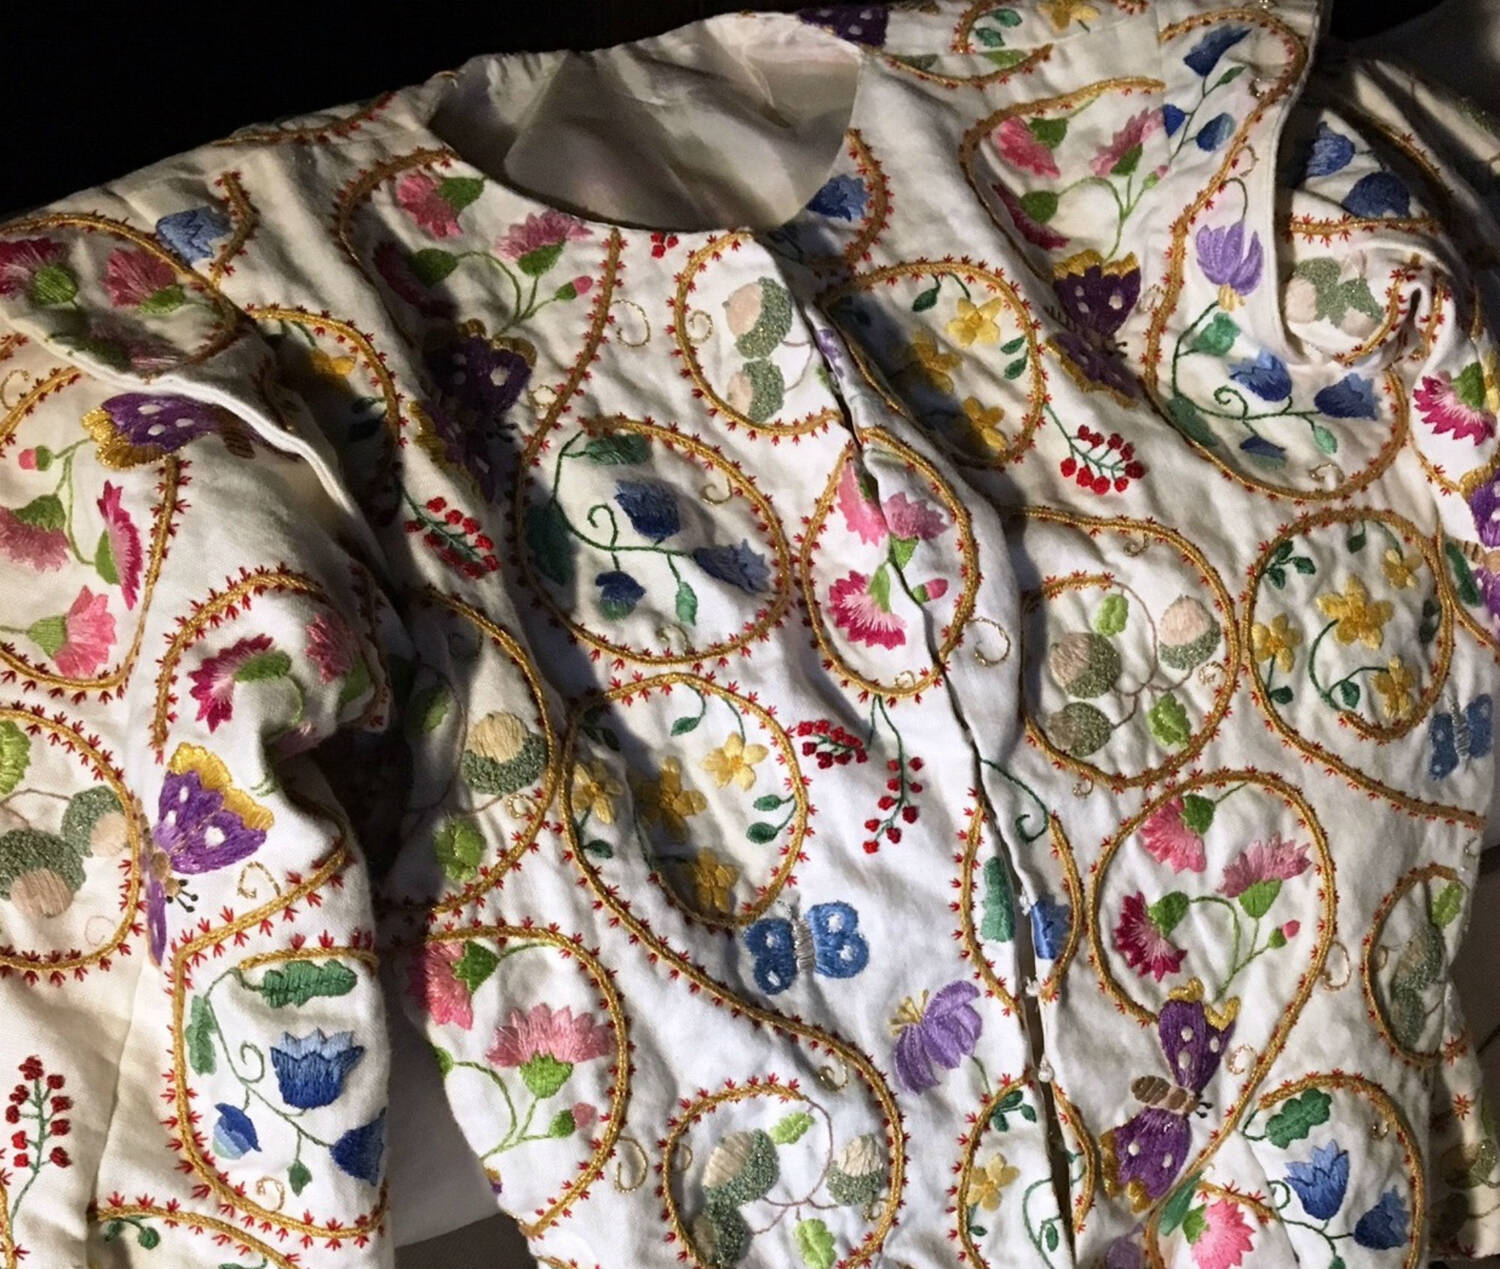 A detail of the crewelwork lady's jacket